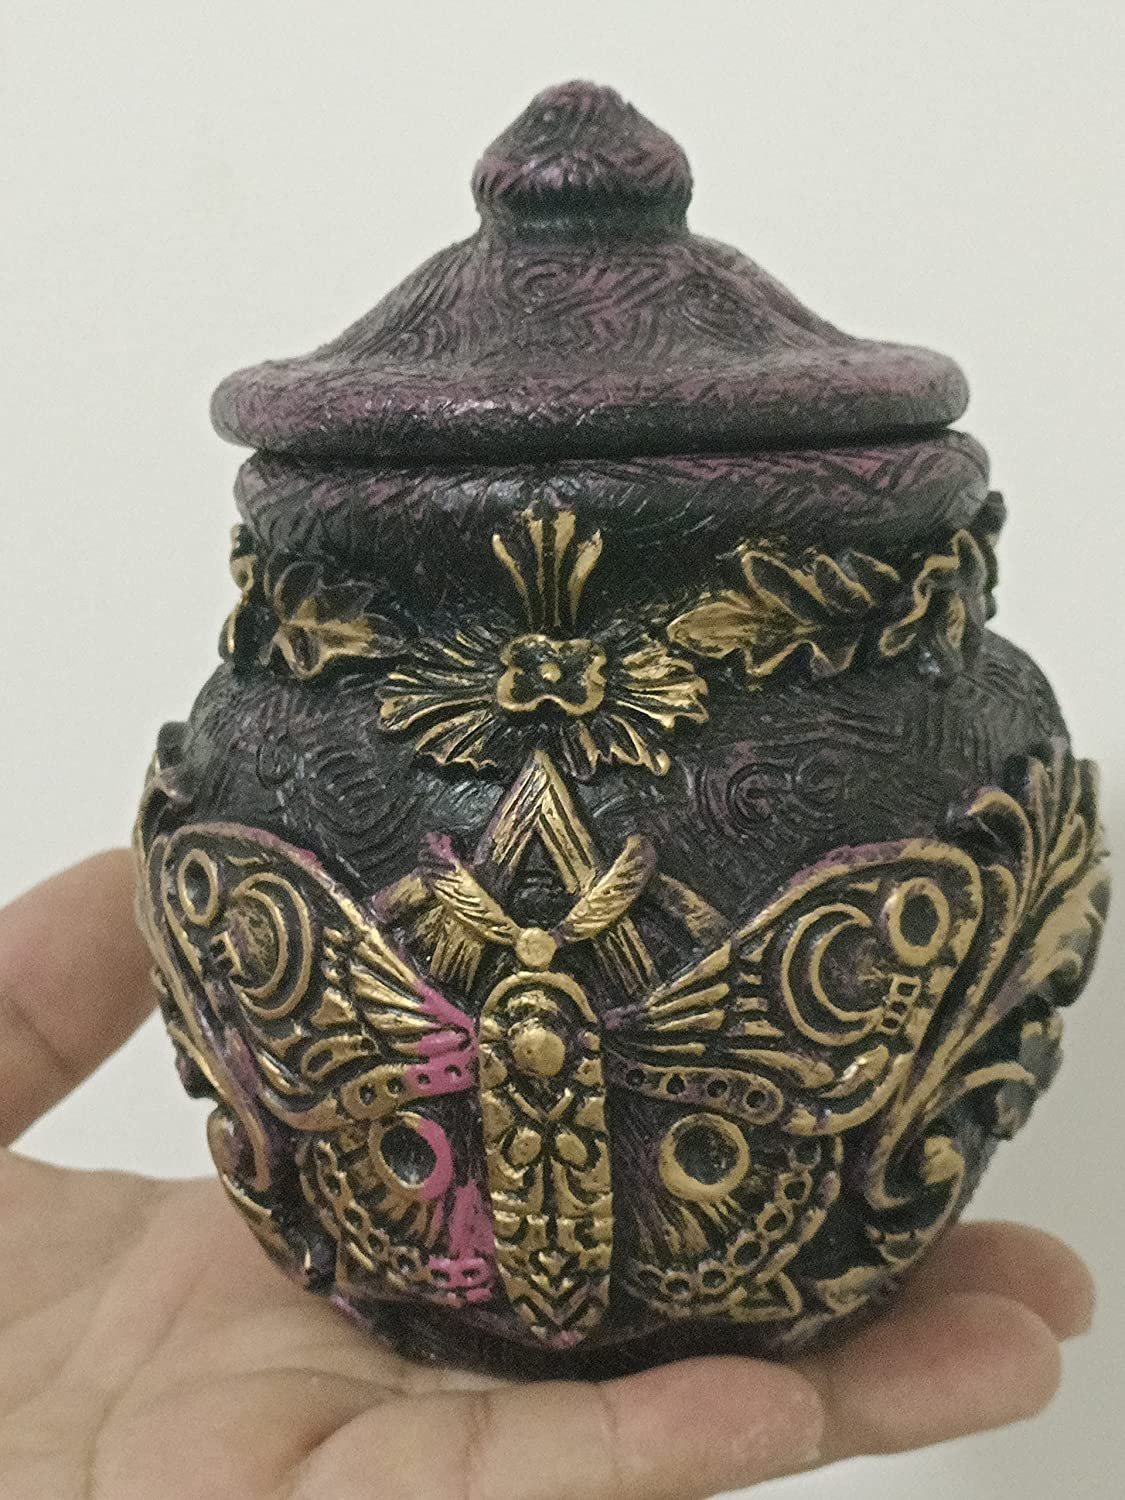 Greenman Popular product Witch Bottle Deathshead Moth Celestial Moon Our shop most popular Apo Decor